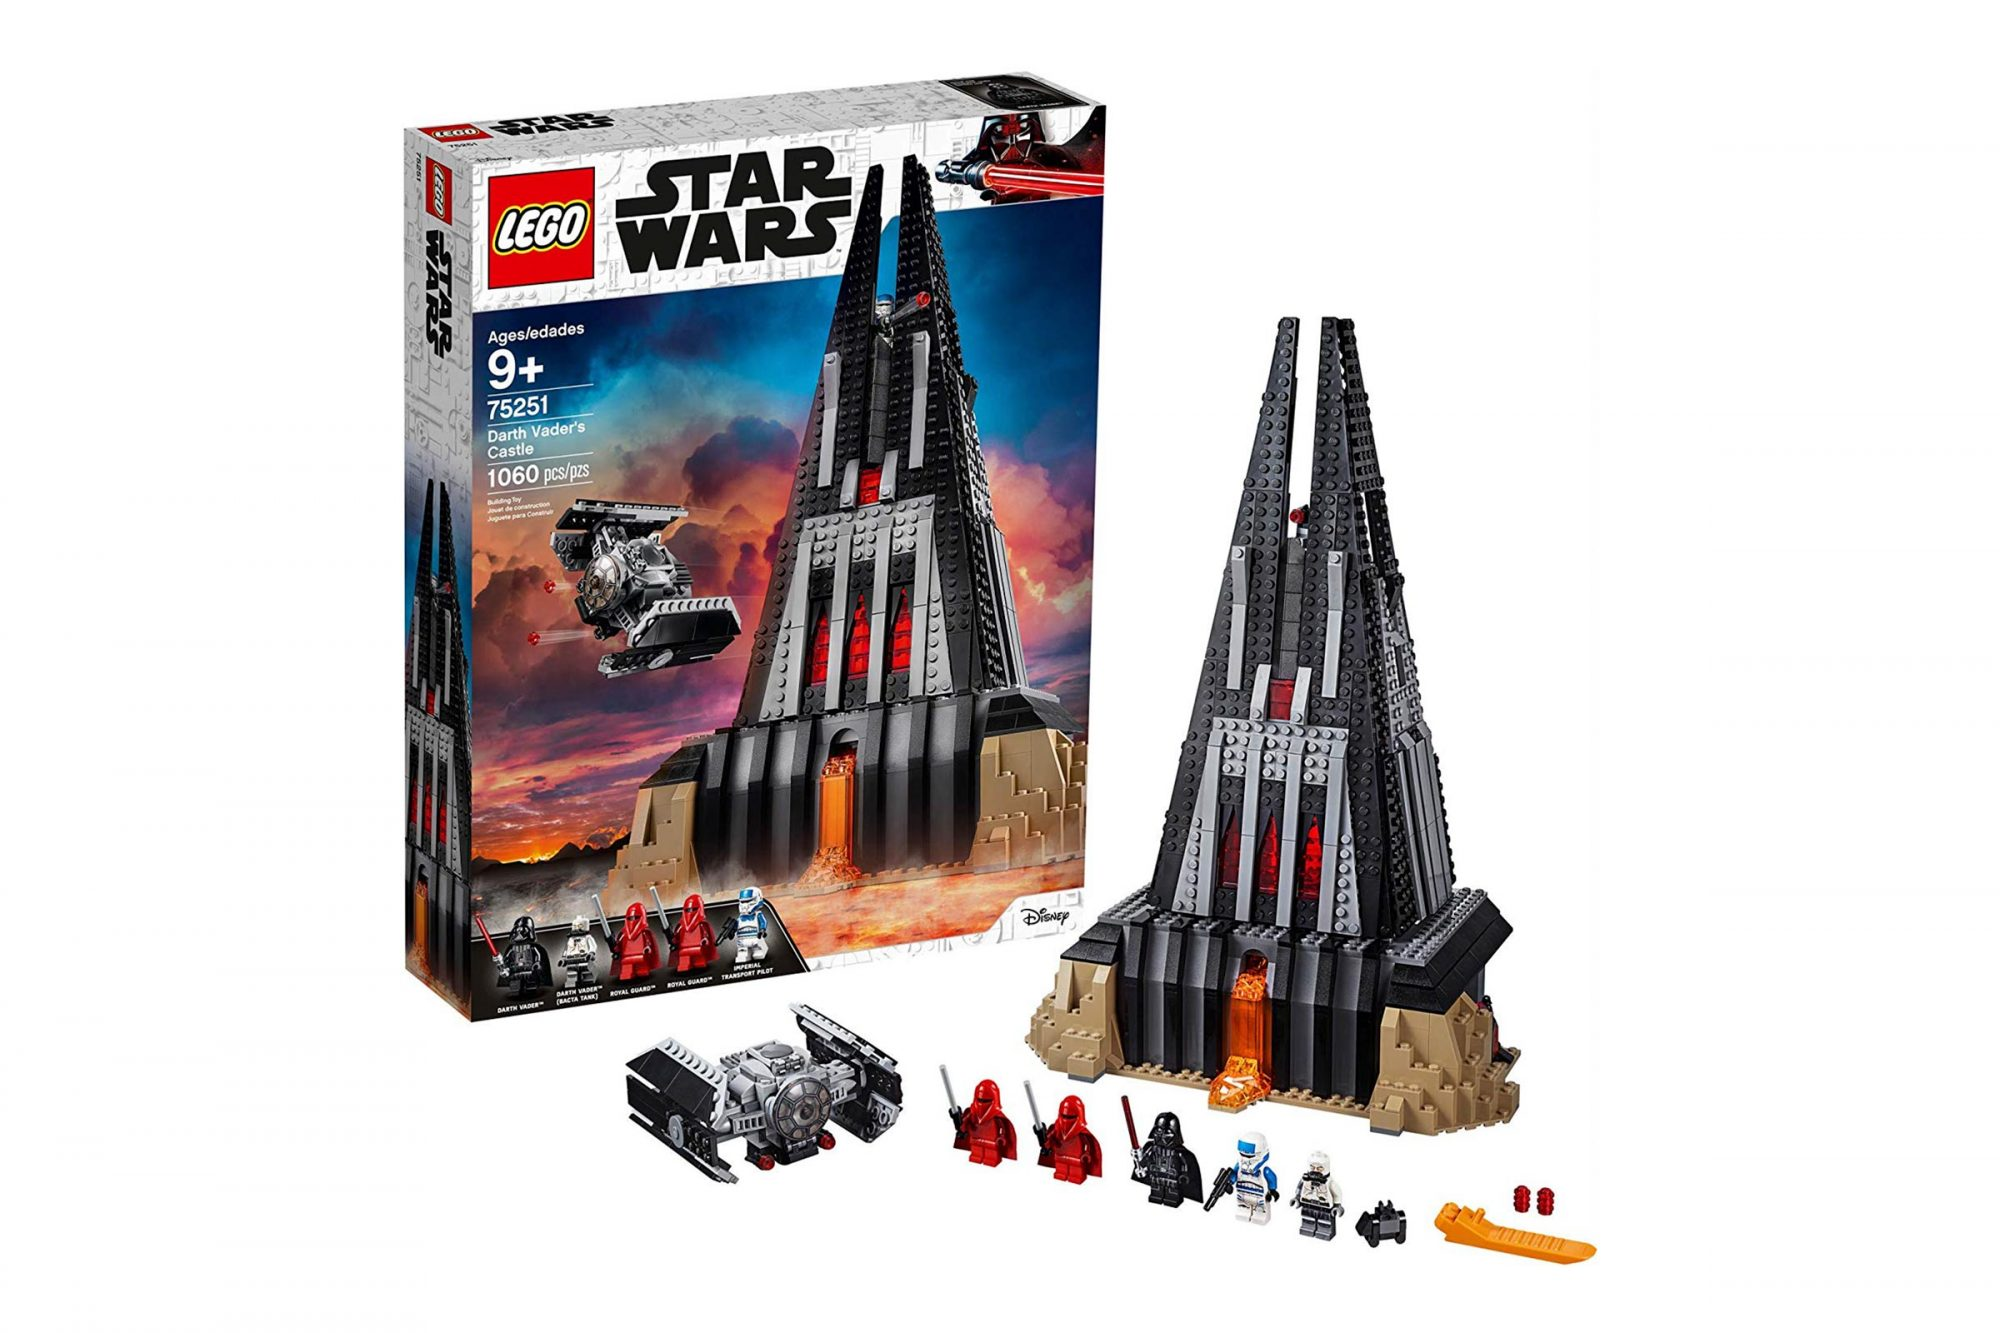 Star Wars Lego Set Was A Best Seller During Amazon Black Friday Ew Com